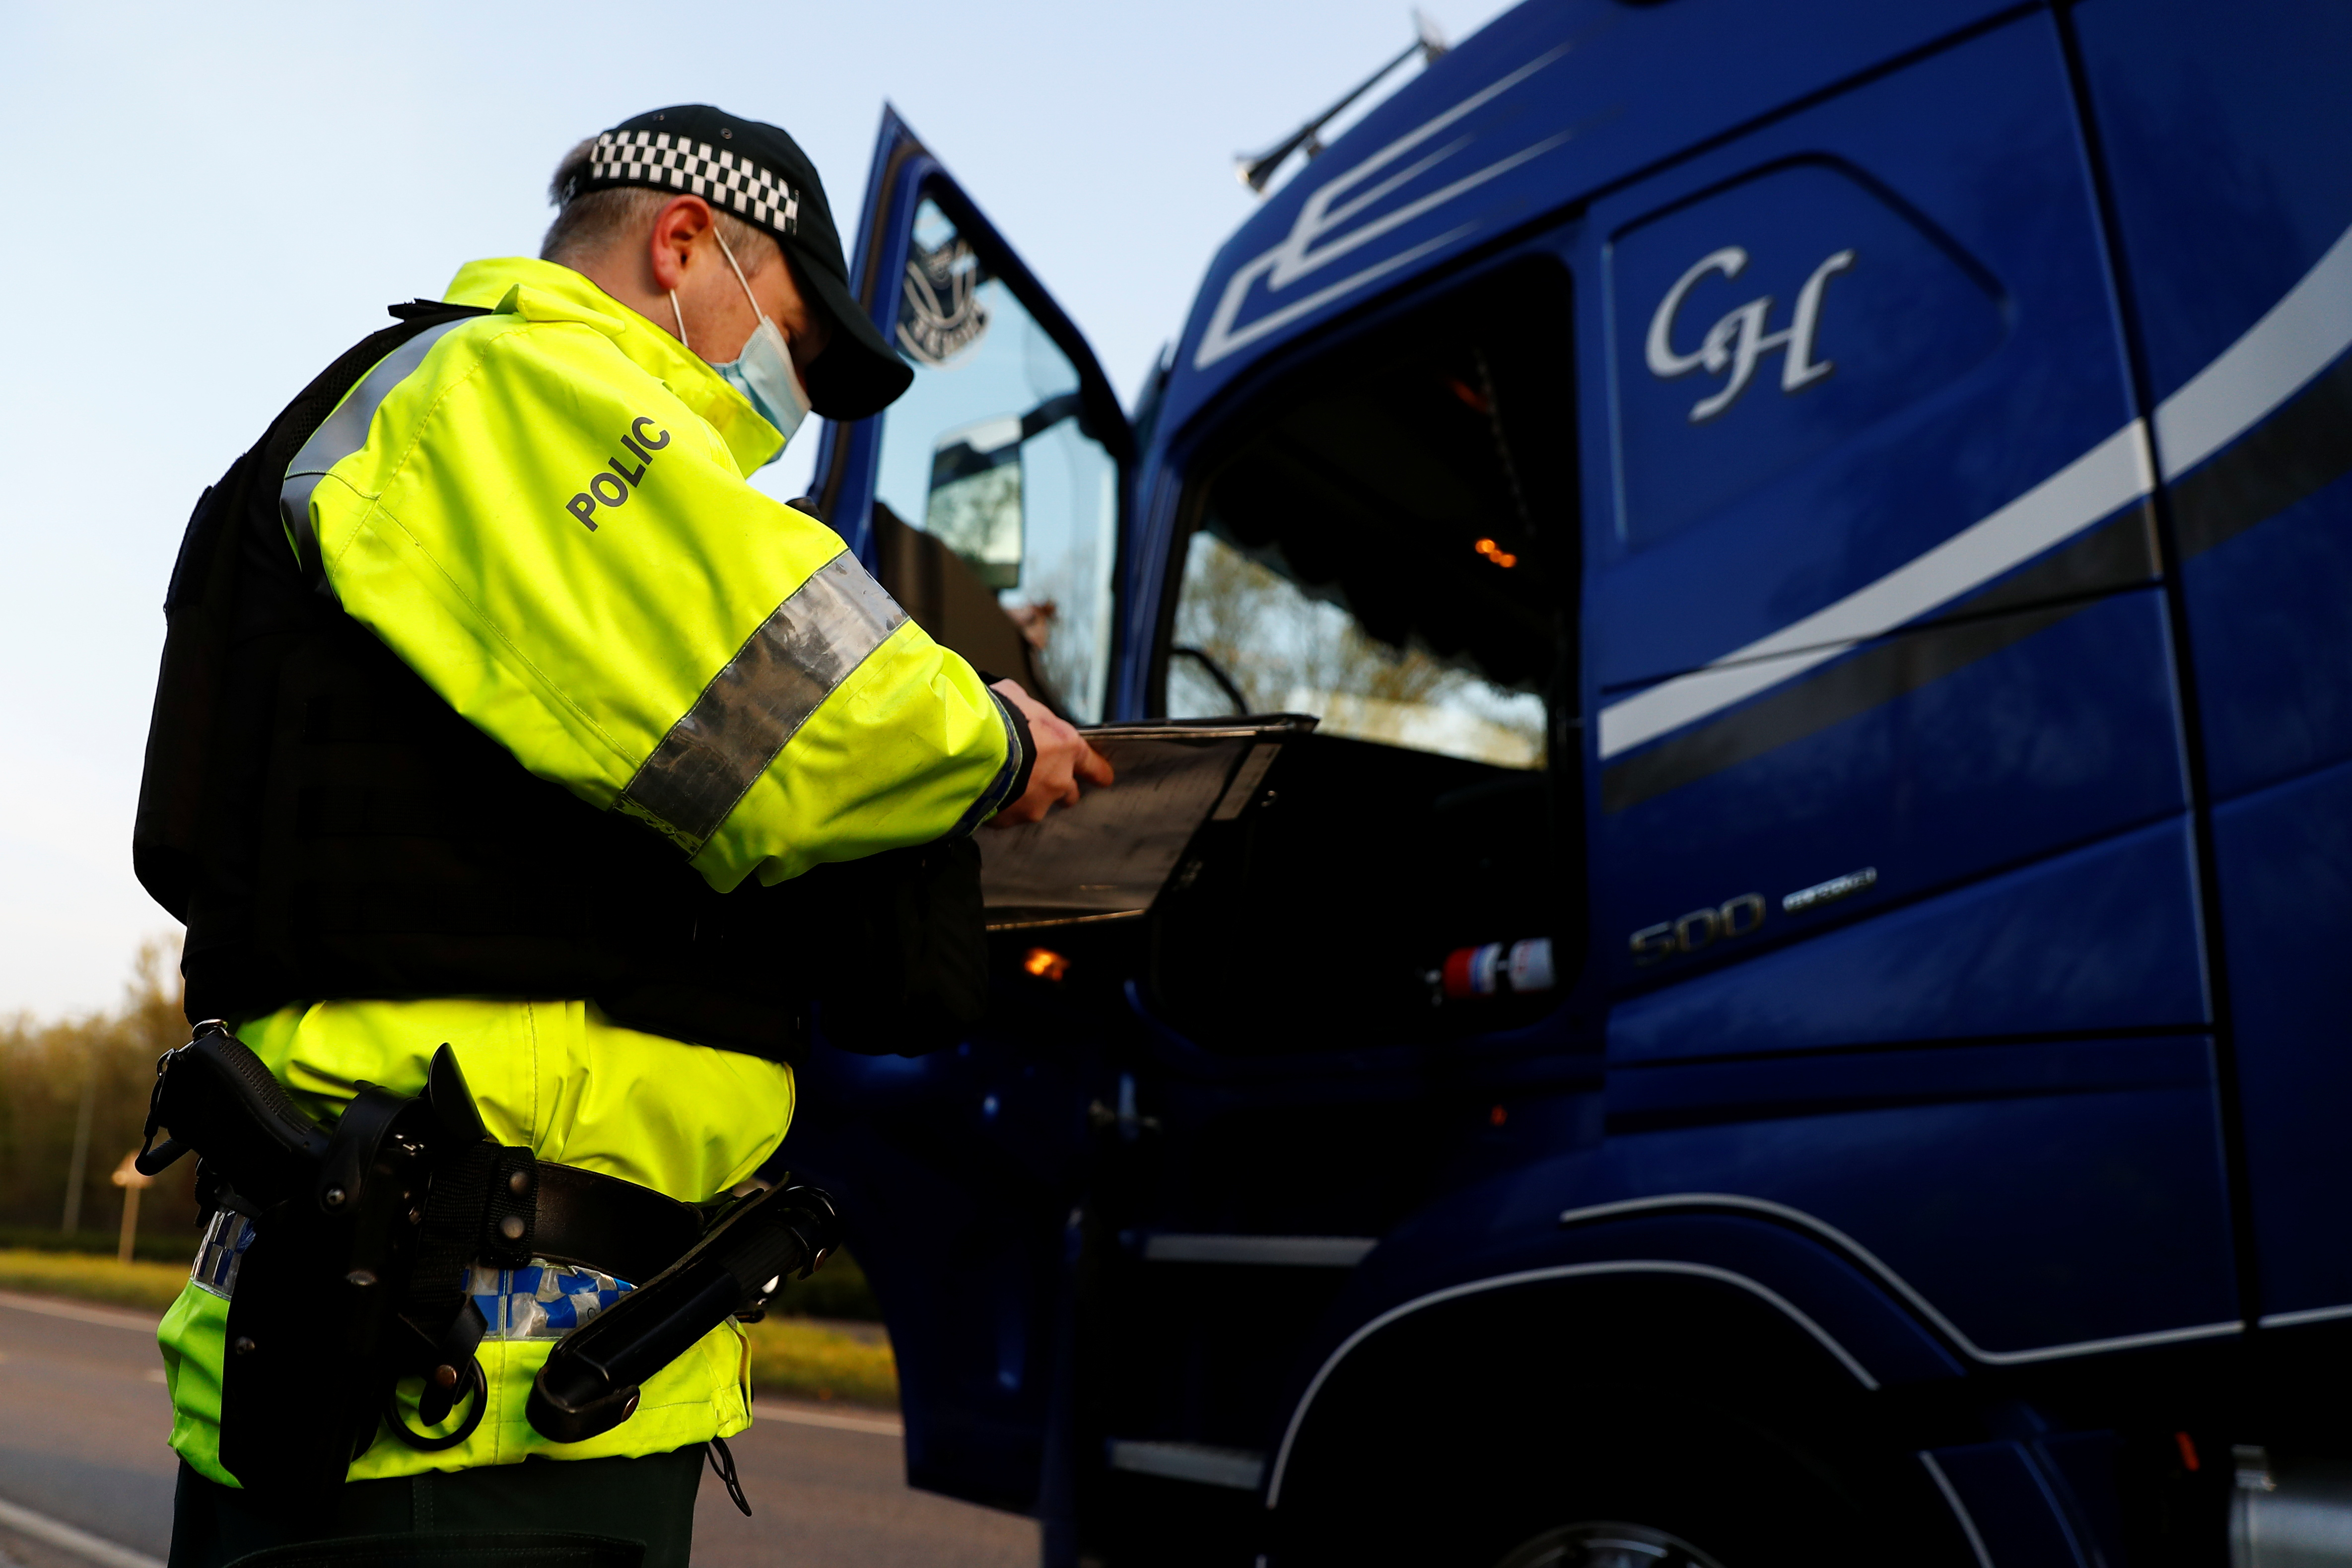 A police officer checks a truck during a joint operation by the Police Service of Northern Ireland (PSNI), Driver Vehicle Agency goods enforcement division and Her Majesty's Revenue and Customs (HMRC), at Belfast Port, Northern Ireland April 22, 2021. REUTERS/Jason Cairnduff